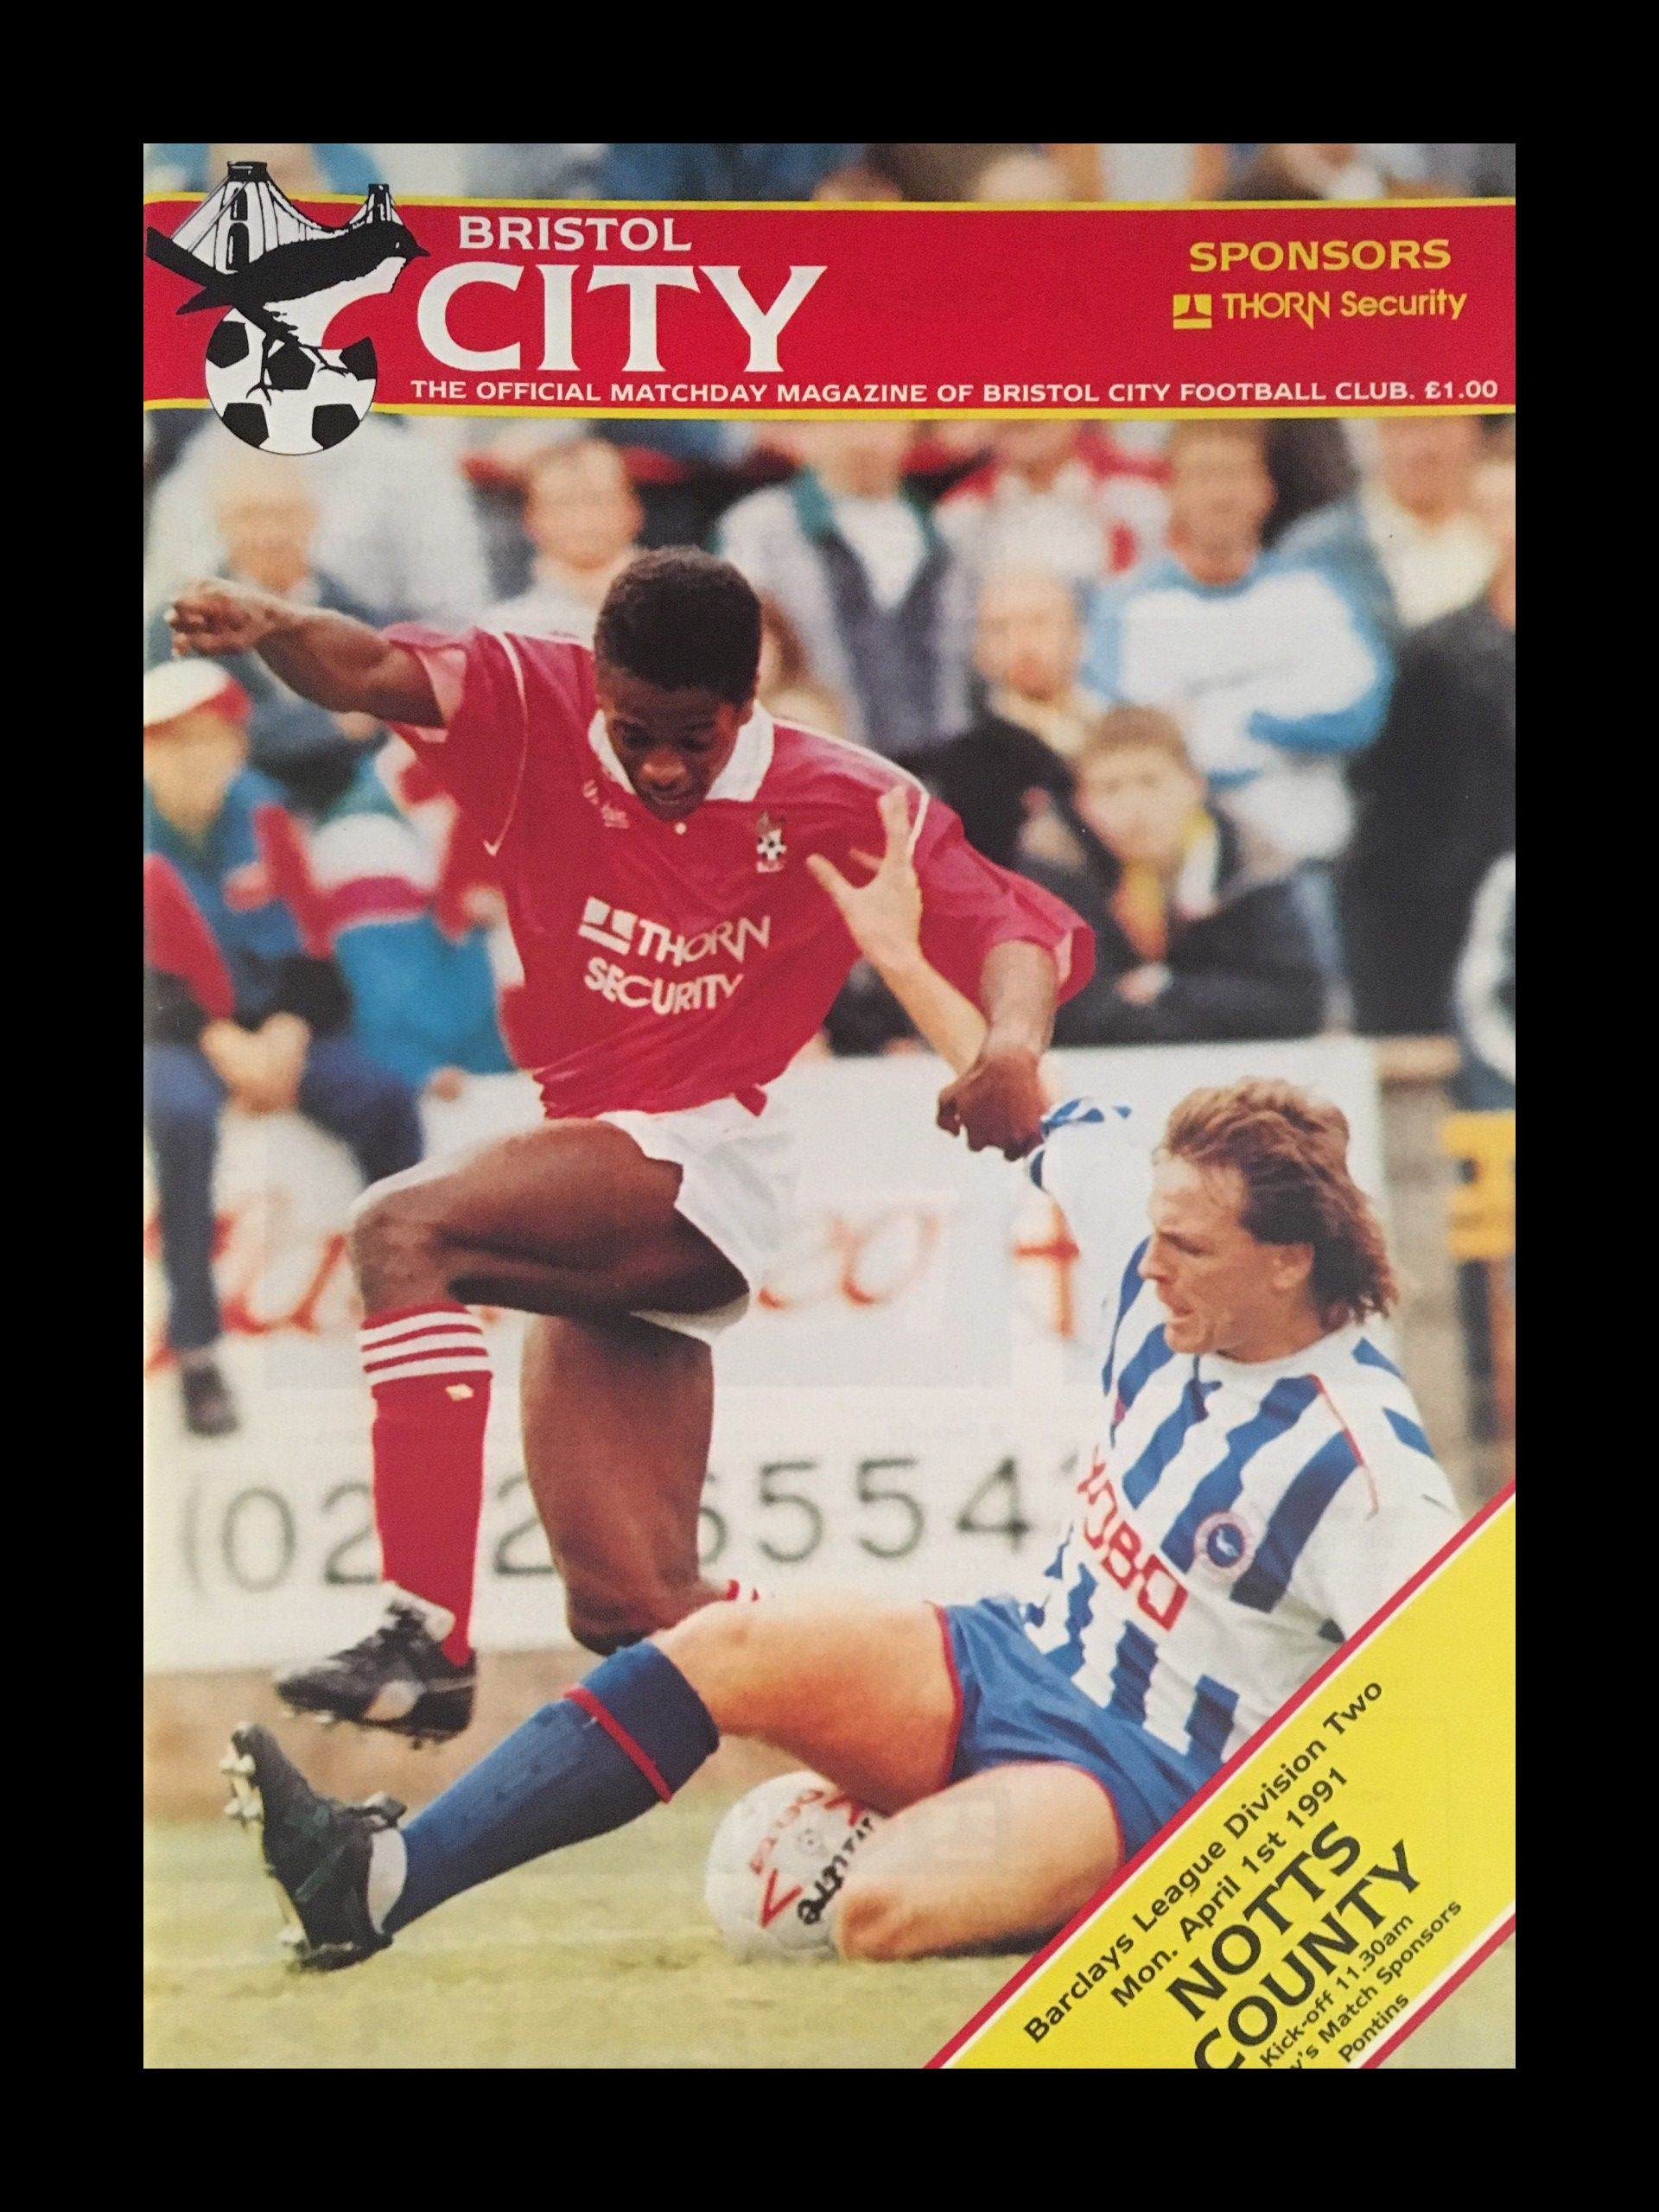 Bristol City v Notts County 04-04-1991 Programme